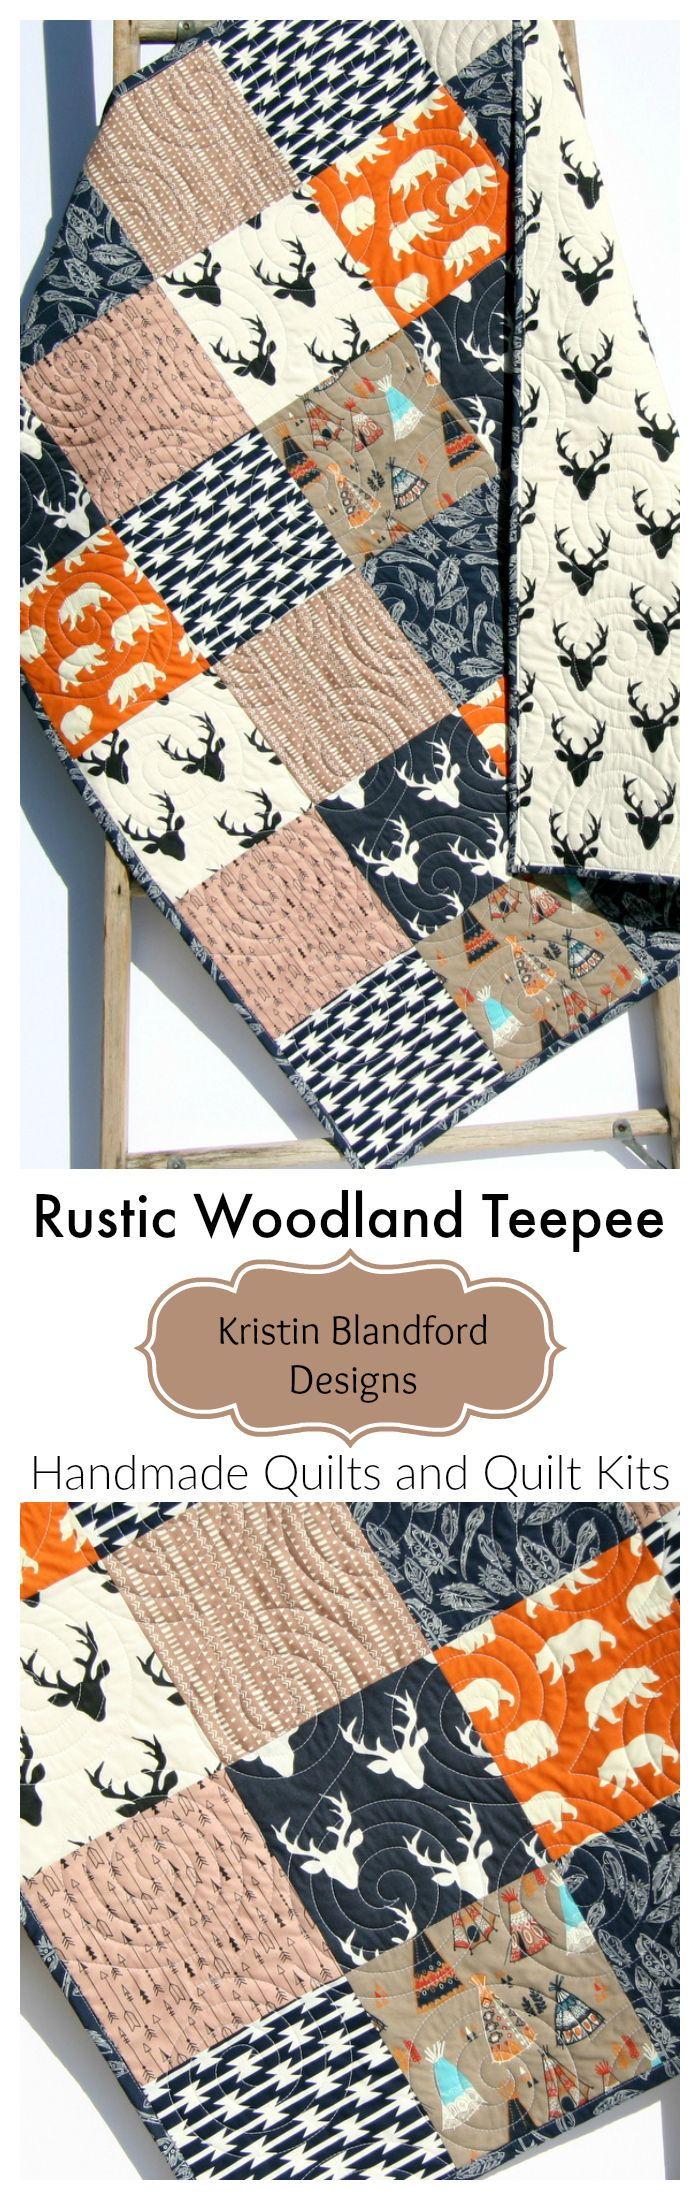 Rustic Woodland Teepee Quilt Kits, Baby Quilt Kit, Throw Quilt Kit, Twin Quilt Kit, Toddler Quilt Kit, Handmade Baby Quilt, Hanmade Quilts for Sale, Buck Deer Bears Aztec Arrows Teepee Feathers Brown Tan Navy Blue Orange, Sewing Project, Beginner Quilting Ideas, Patchwork Quilt Kit by Kristin Blandford Designs  #babyquilt #handmadegifts #giftfromgrandmother #baby